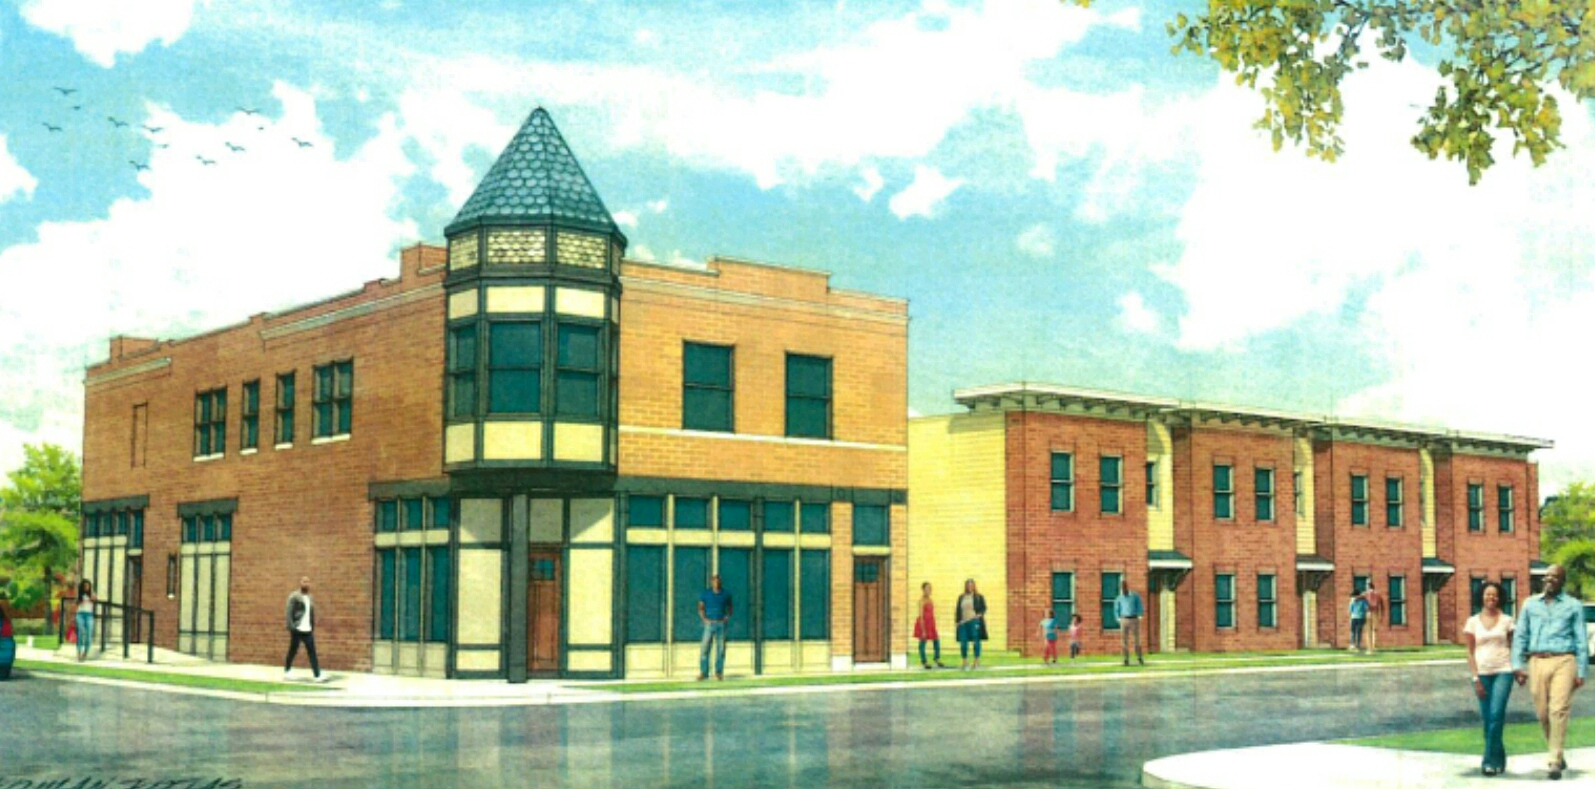 43 New and Renovated Homes Proposed in the Ville